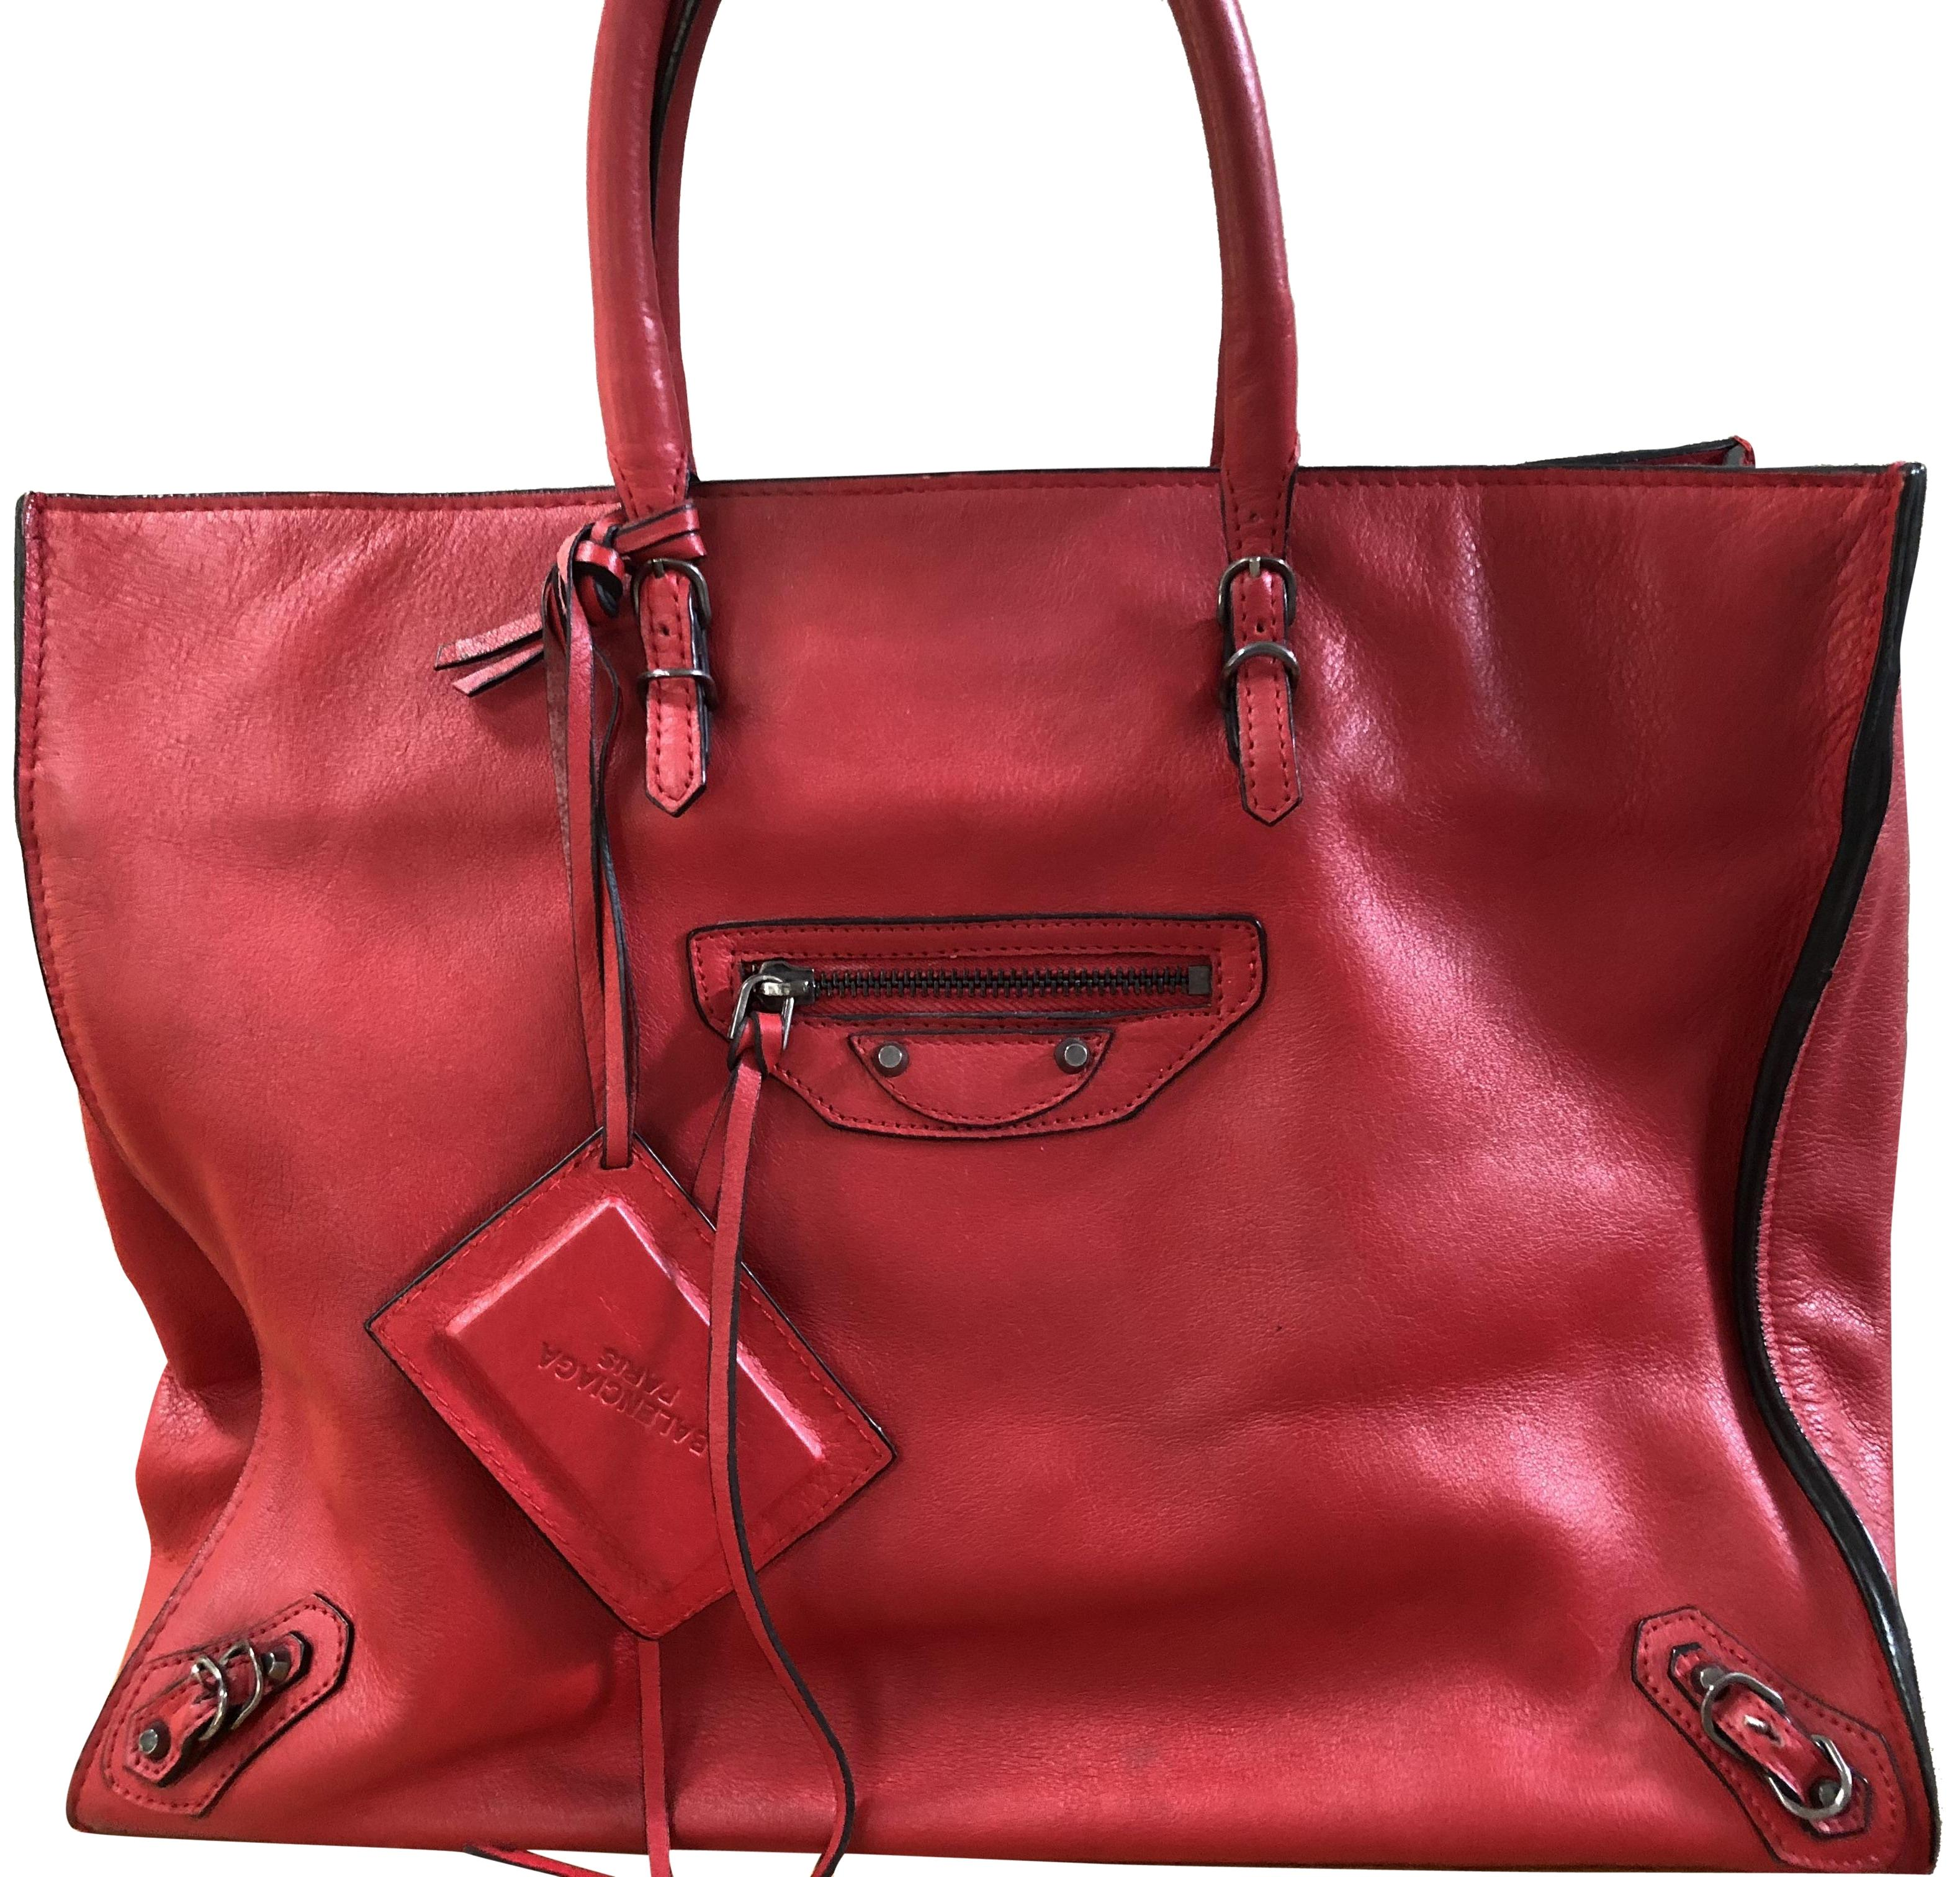 Balenciaga Papier A4 Tote Rouge Red Calfskin Leather Satchel Tradesy